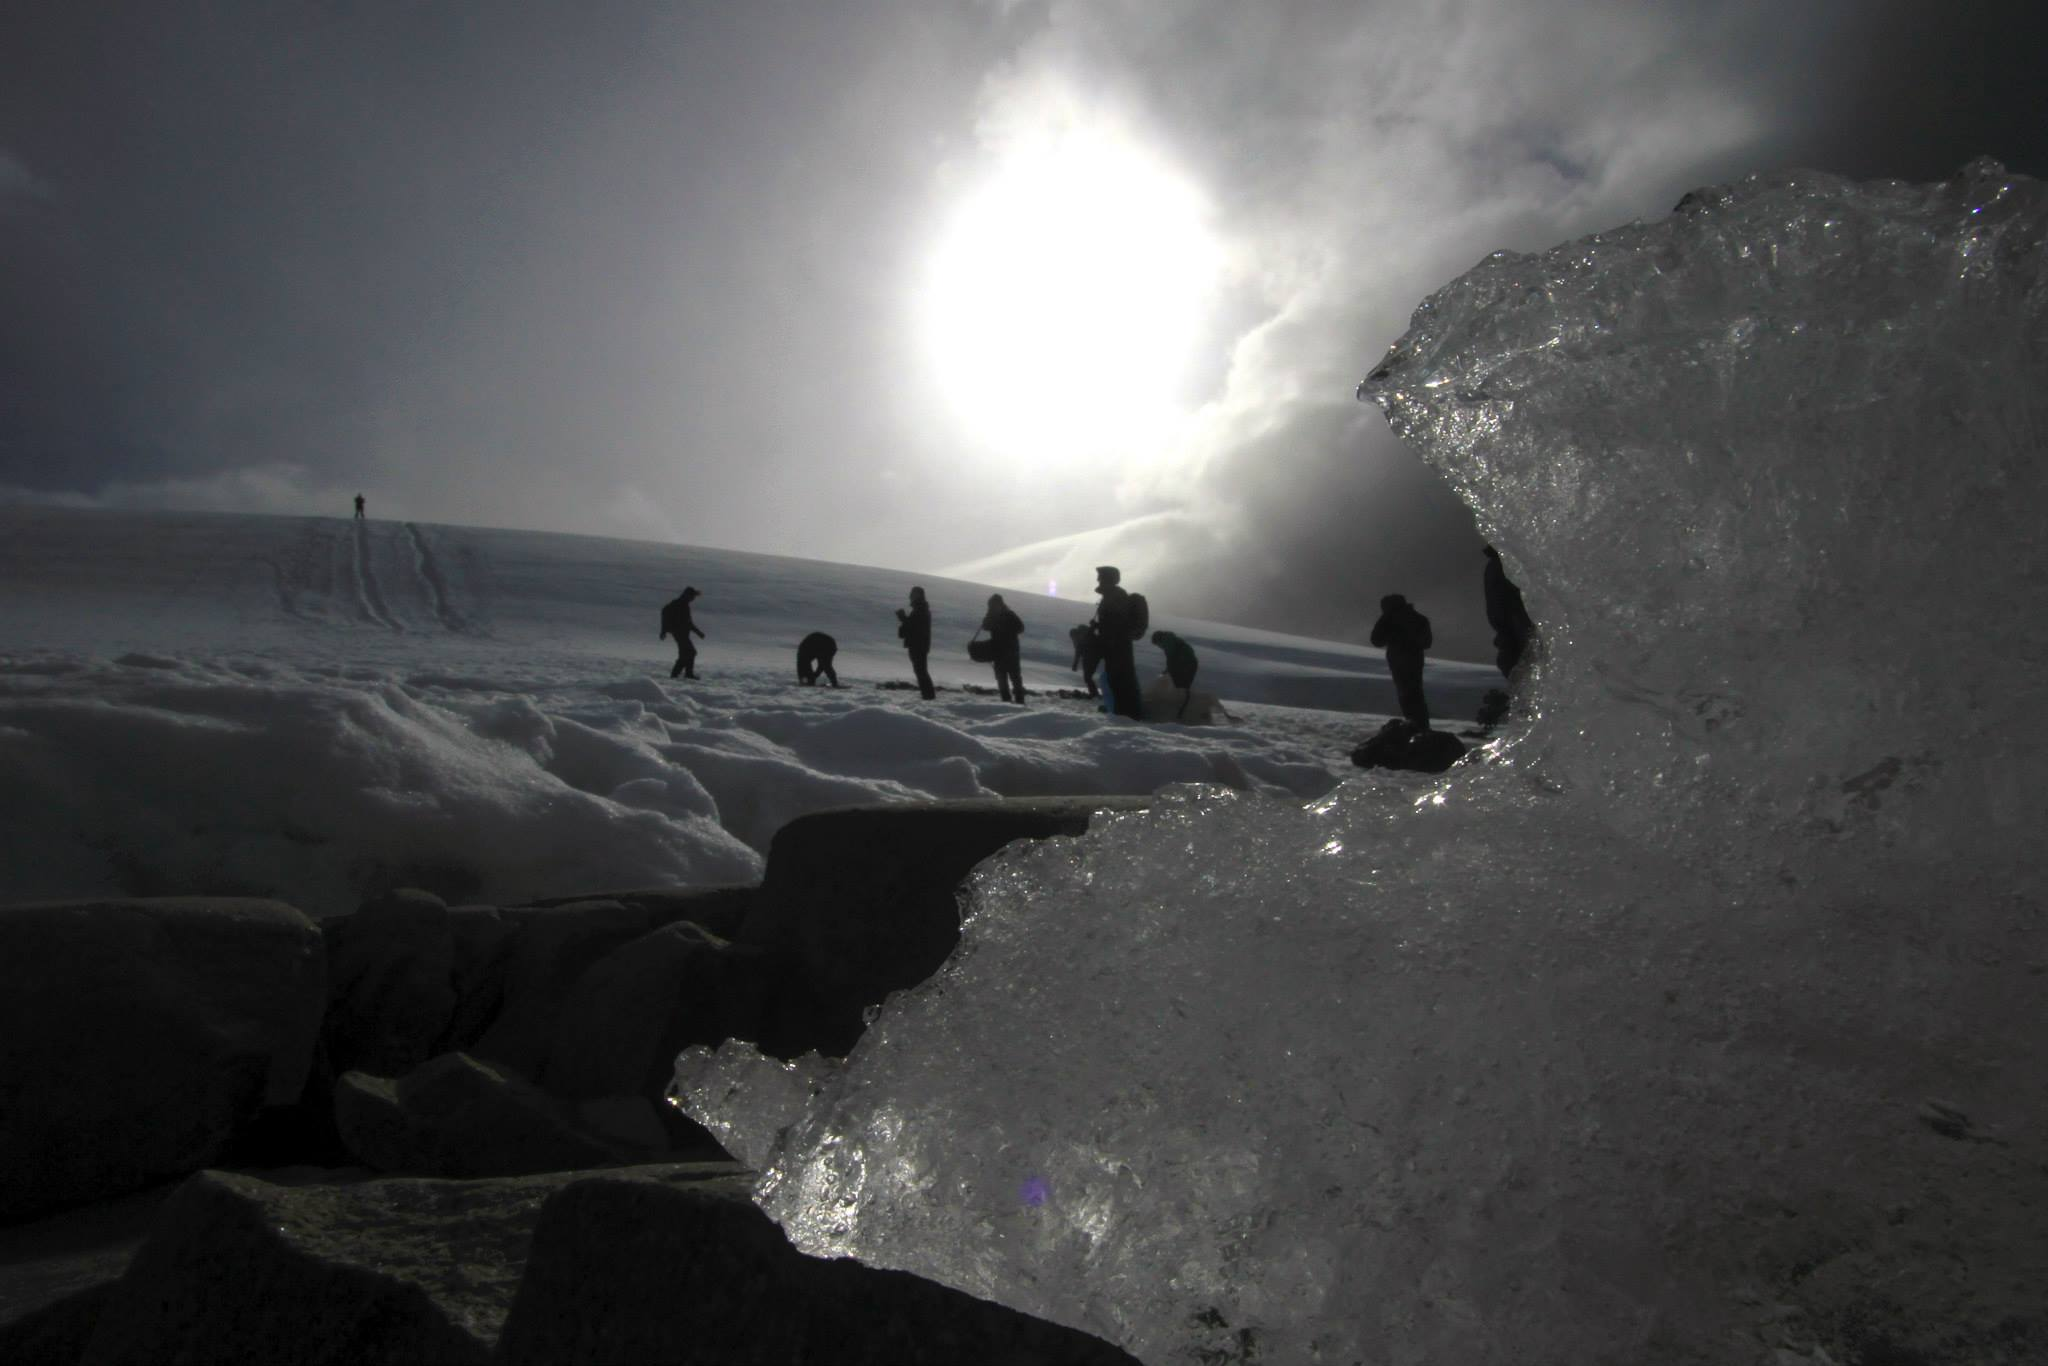 The team of 'adventurers' at the Antarctic